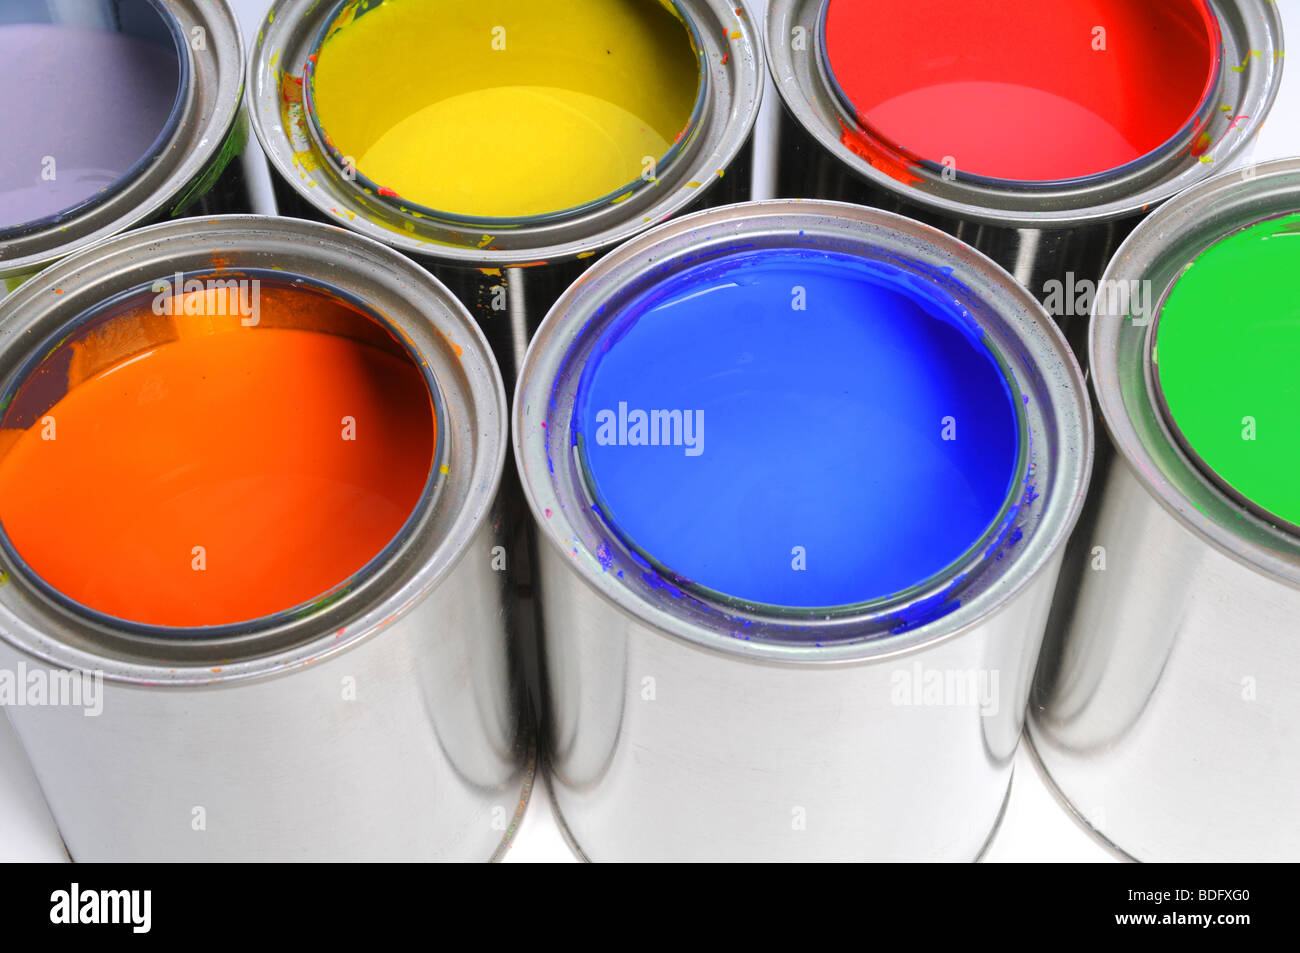 Open cans of paint in close up view - Stock Image